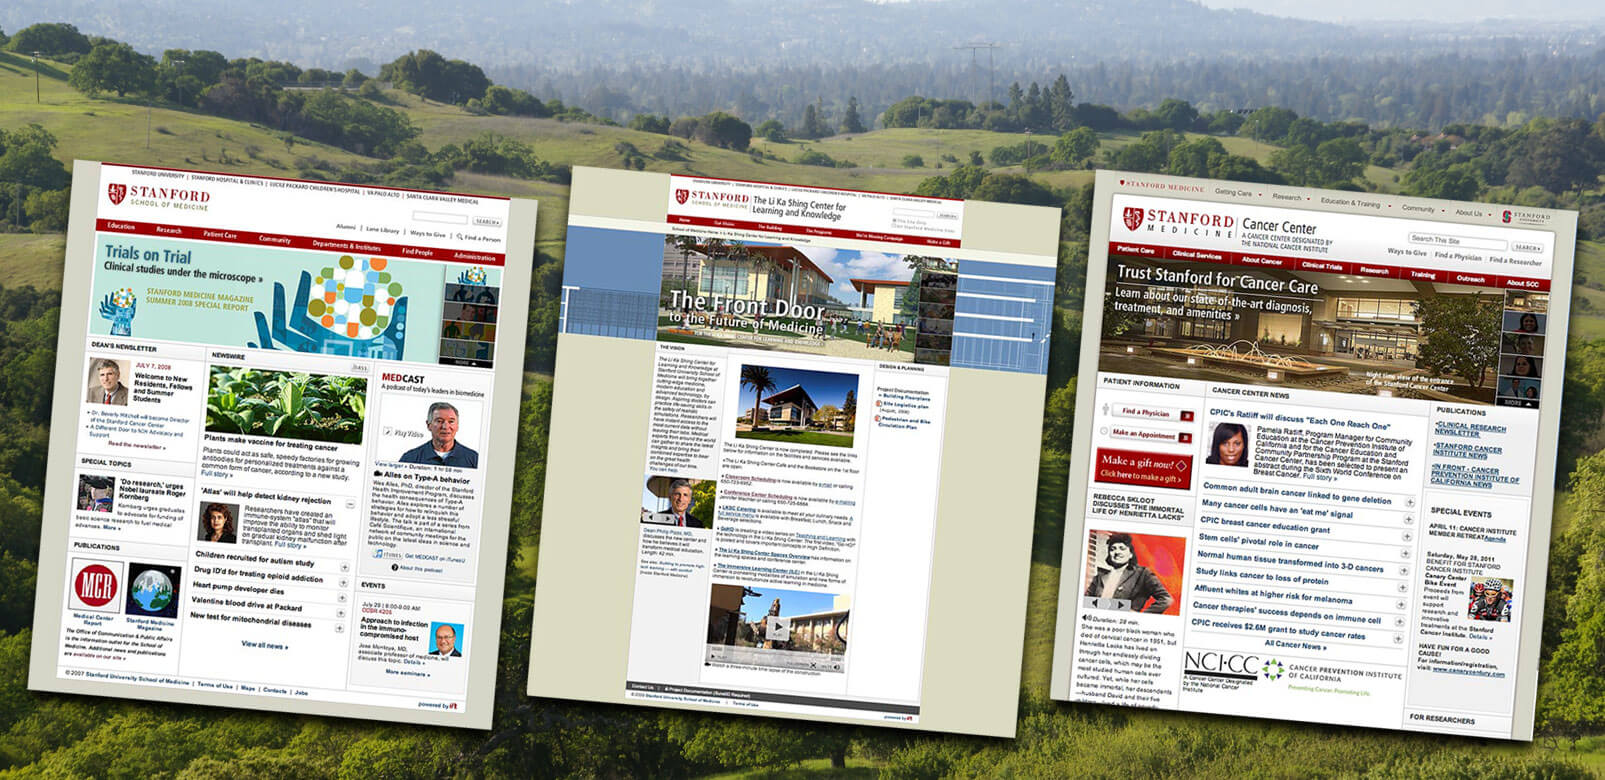 Stanford Medicine - Website architecture & design